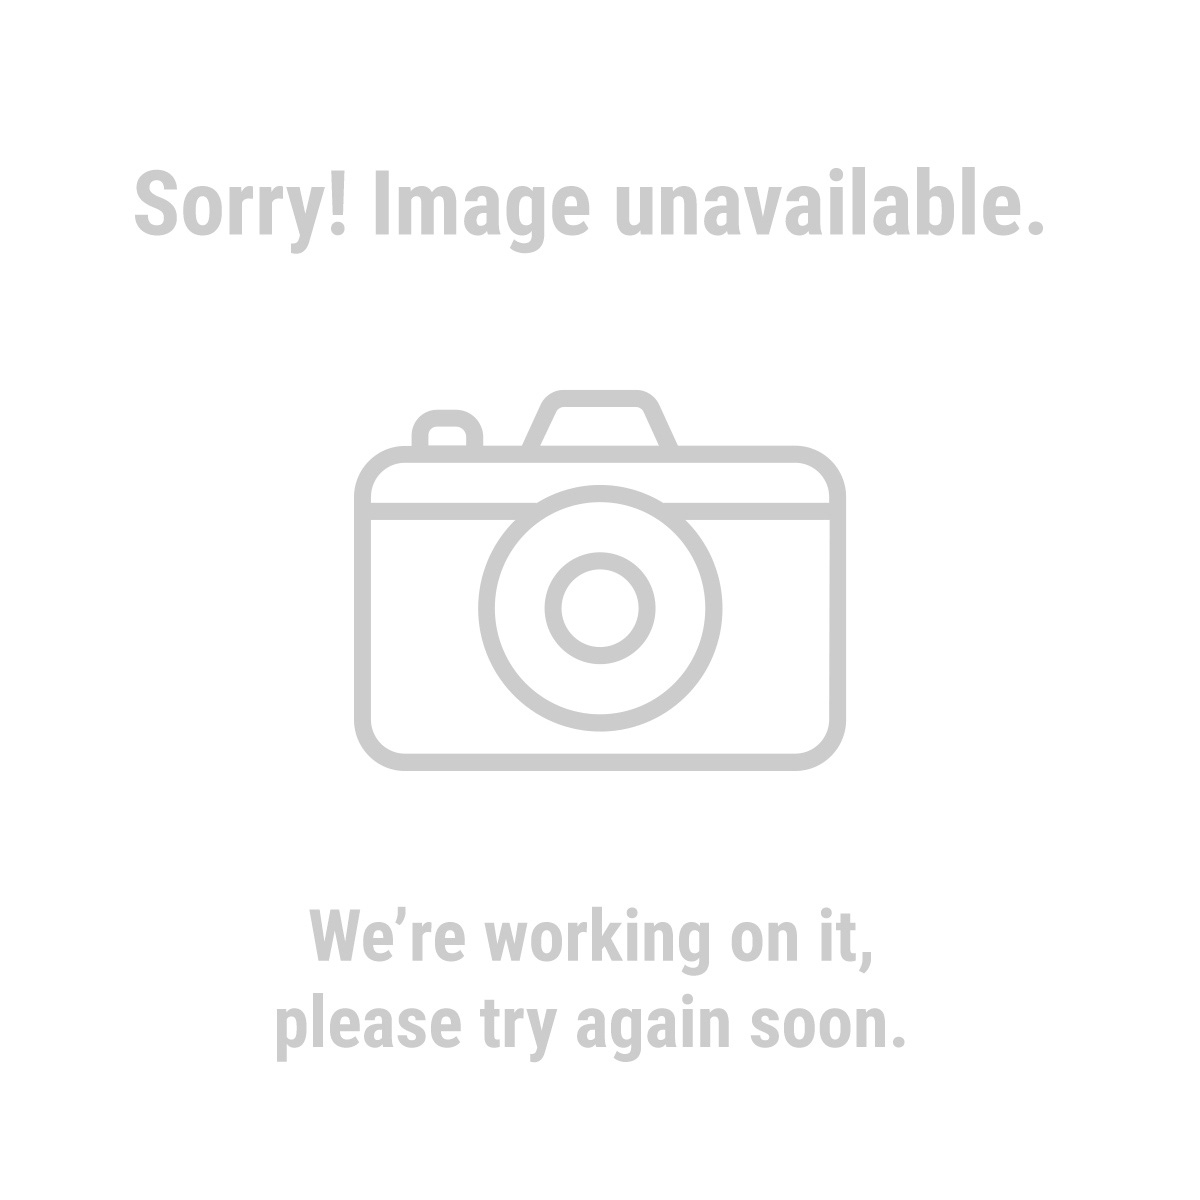 Haul-Master® 62467 600 lb. Capacity Appliance Hand Truck